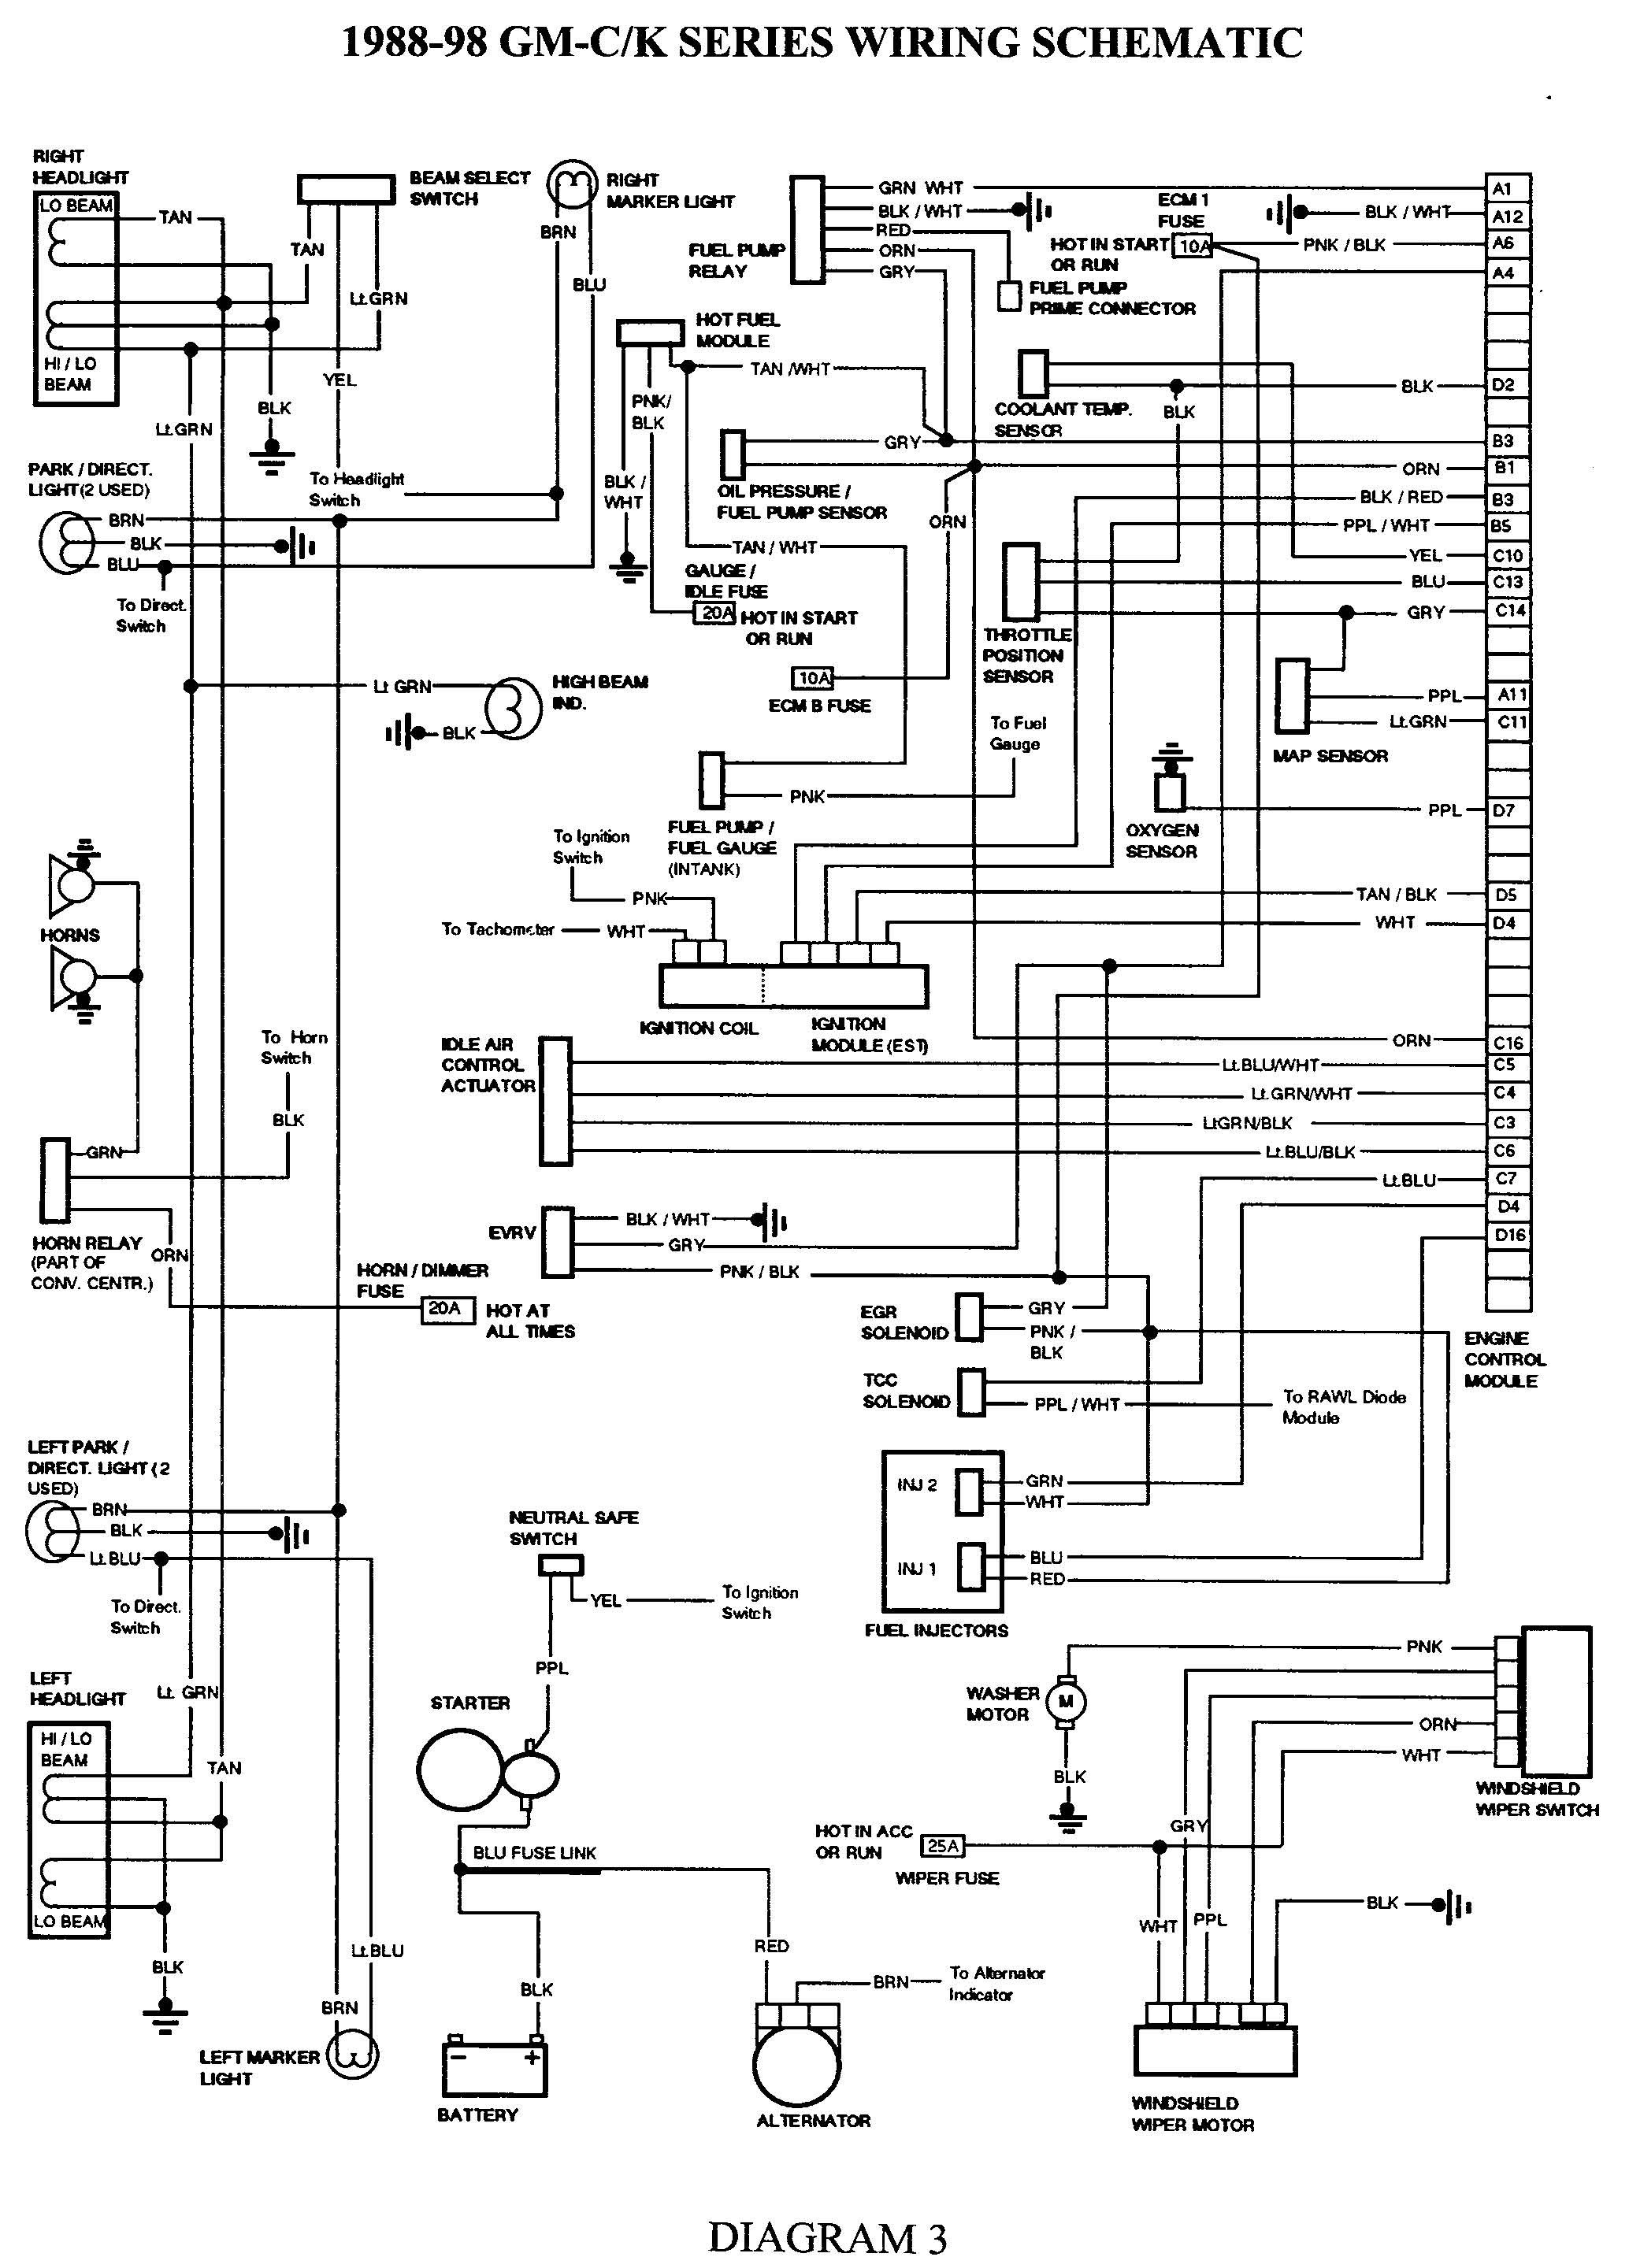 95 s10 fuse diagram new wiring diagram 1995 Chevy Heater Diagram